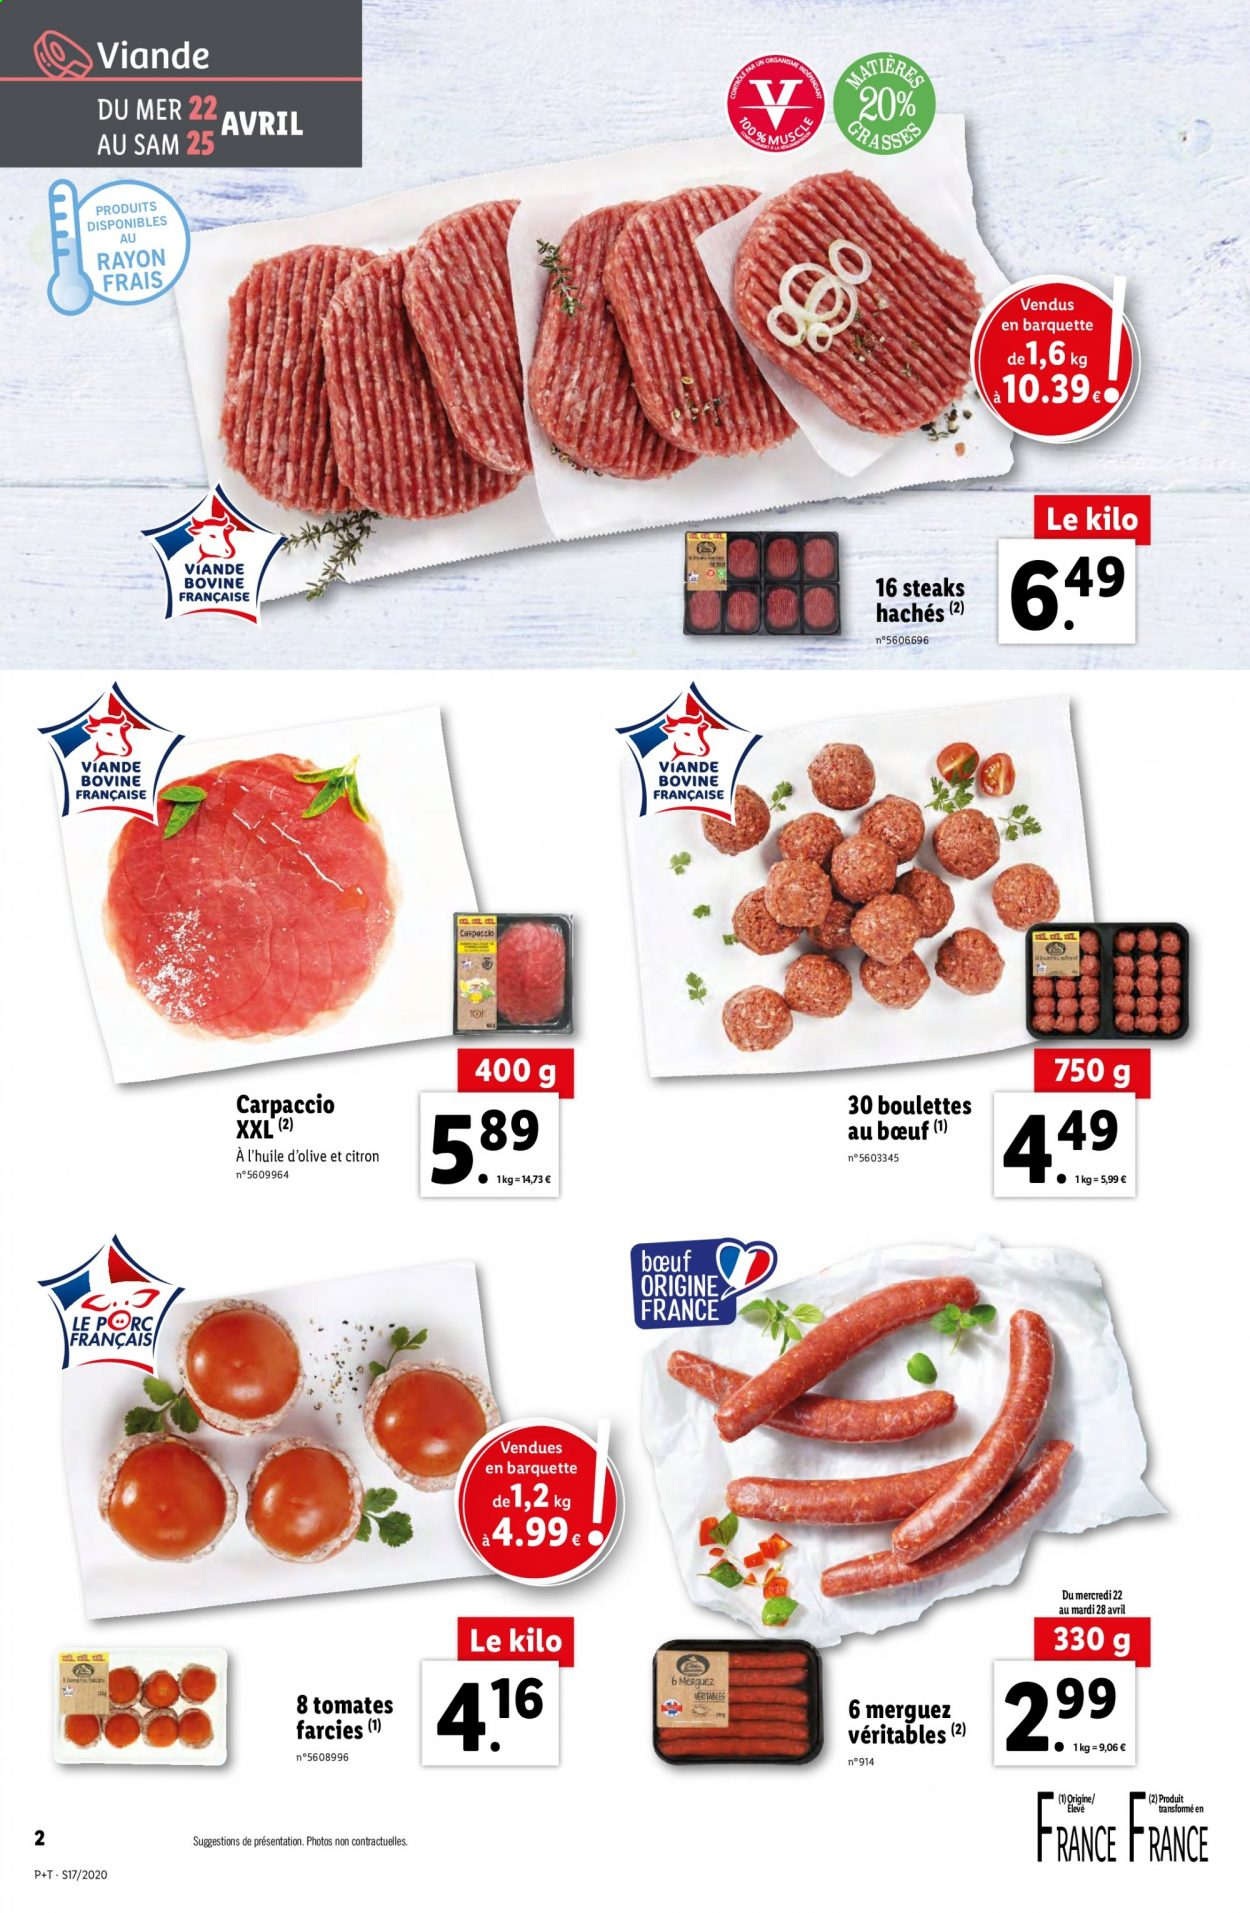 Catalogue Lidl - 22.04.2020 - 28.04.2020. Page 2.